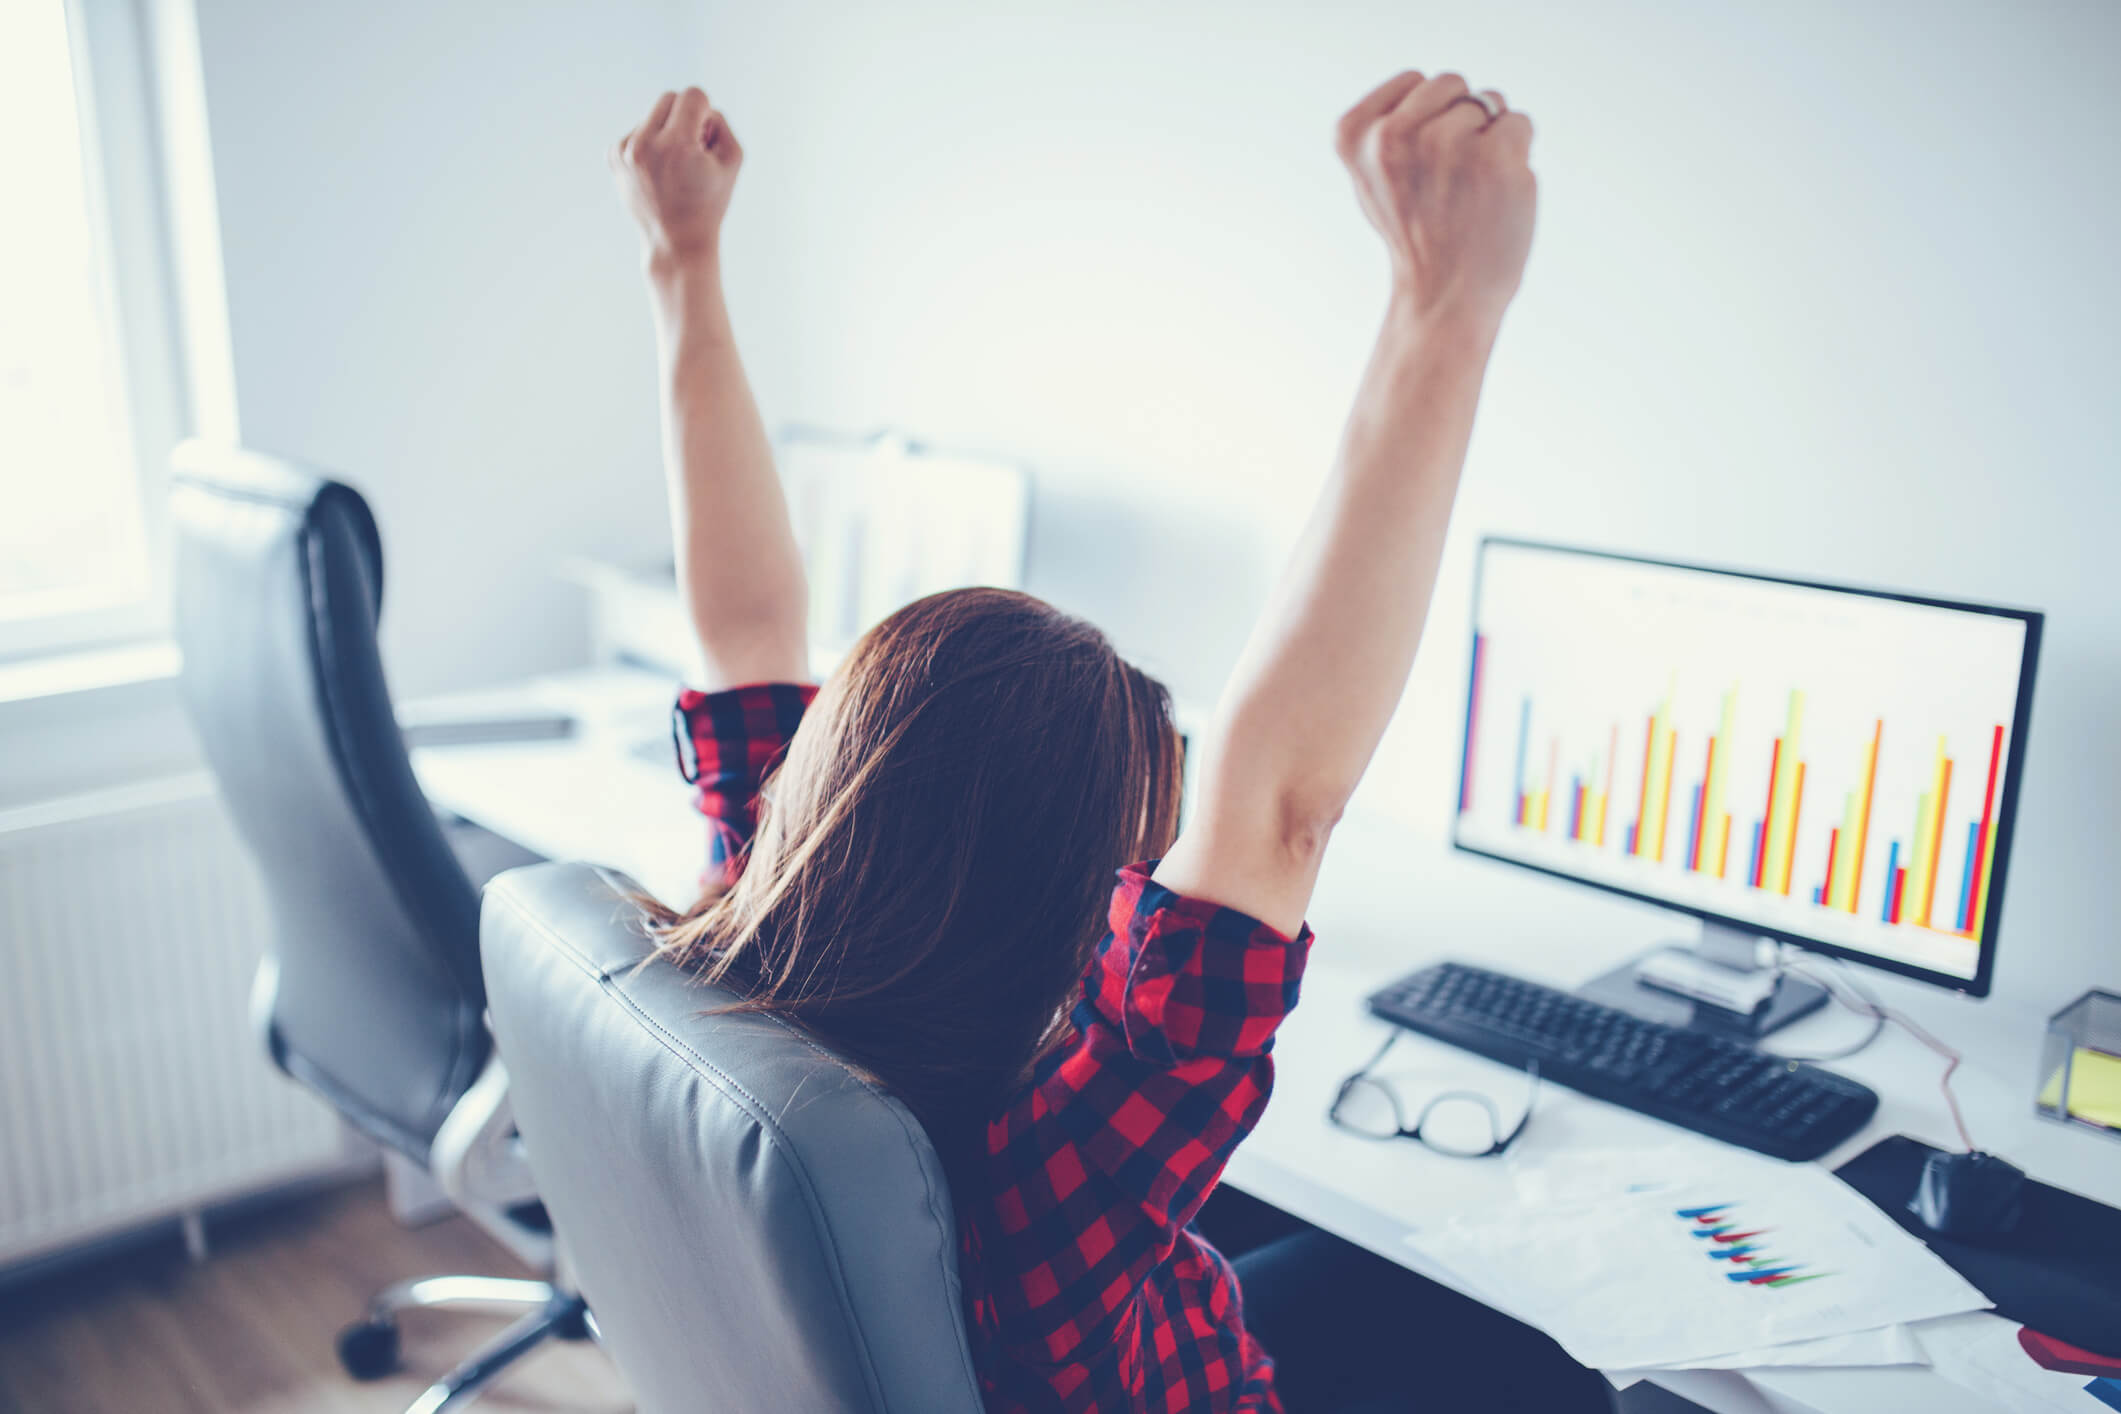 This is a photo of a woman cheering behind a computer wearing a plaid shirt, celebrating thee benefits of a title loan